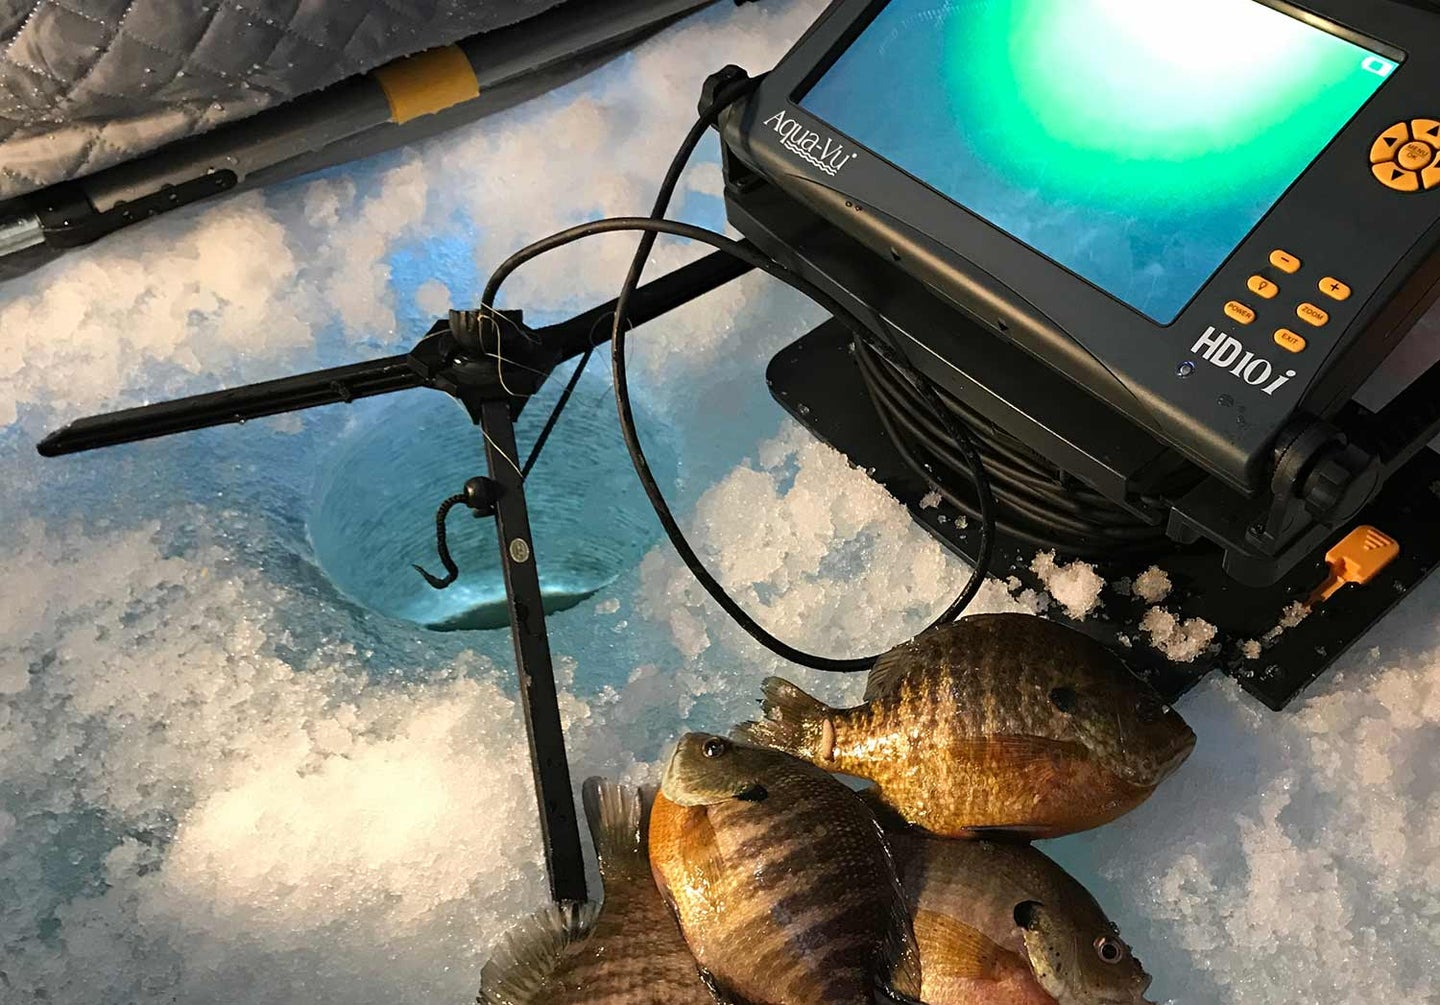 hi-def underwater cam used for ice fishing.